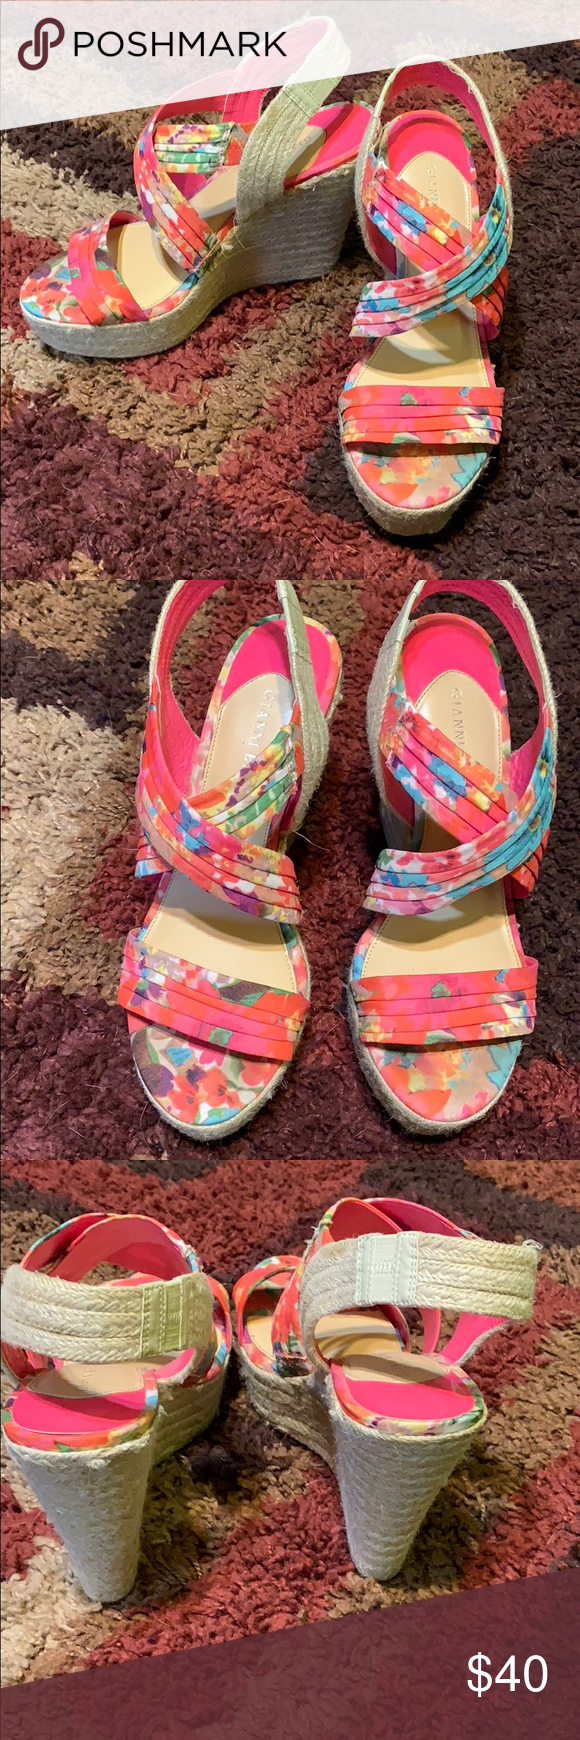 dc68f2a29e3f Actually comfy wedges. Mainly pink with flowers. 6 inch heel. Size 10.  Small mark (noted in pic). Gianni Bini Shoes Wedges